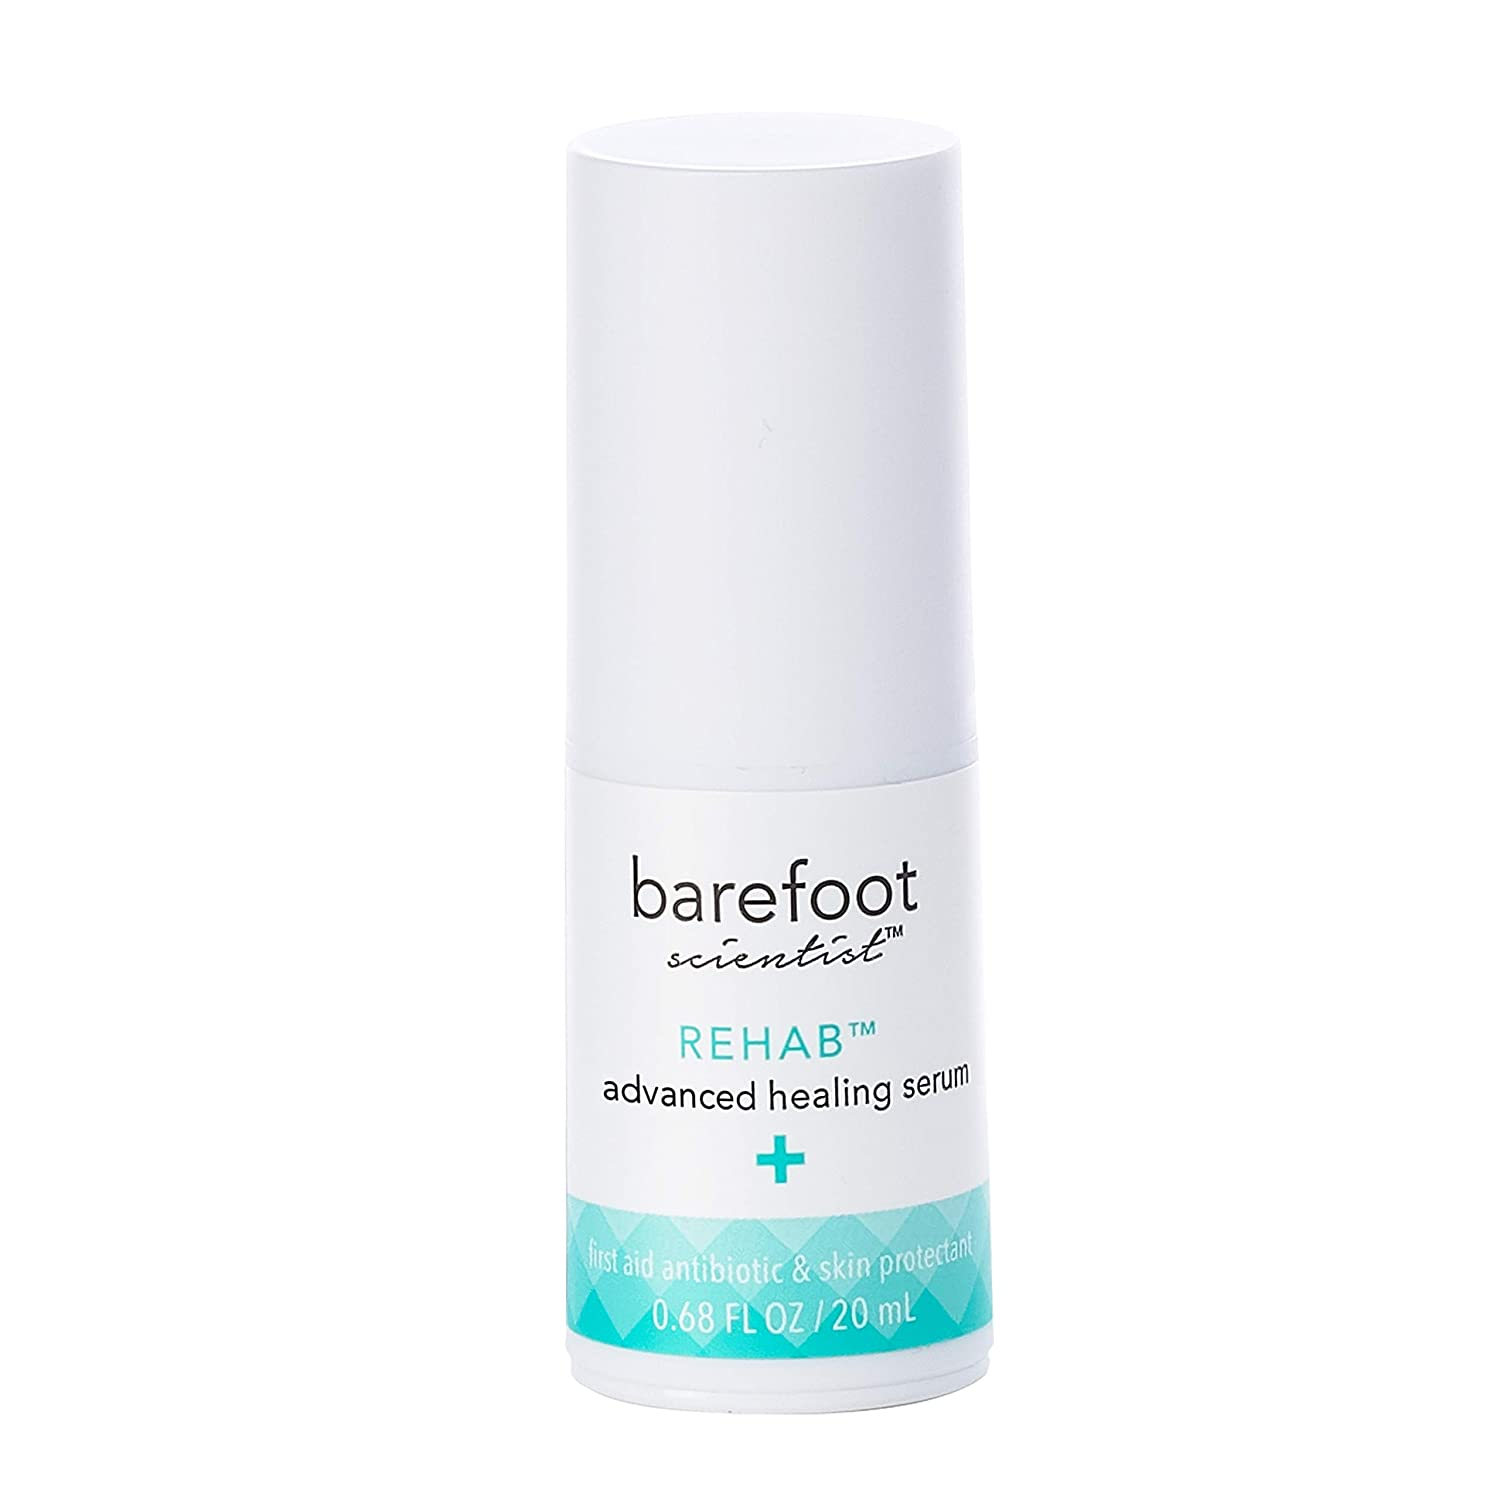 Barefoot Scientist Rehab Multi-Action Healing Serum, Advanced First Aid Topical Antibiotic Ointment